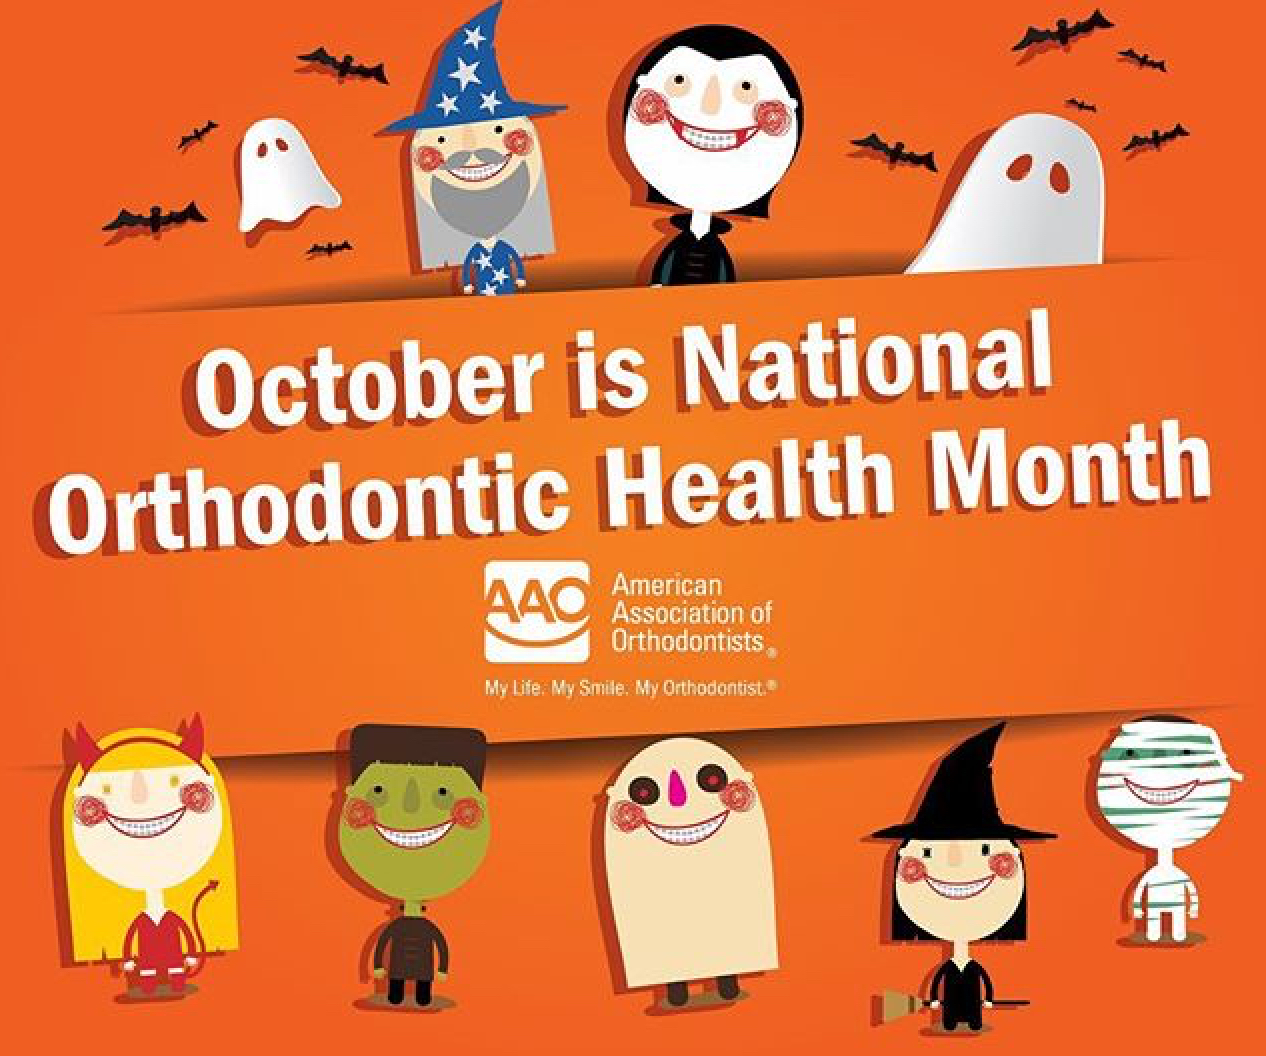 National Orthodontic Health Month!